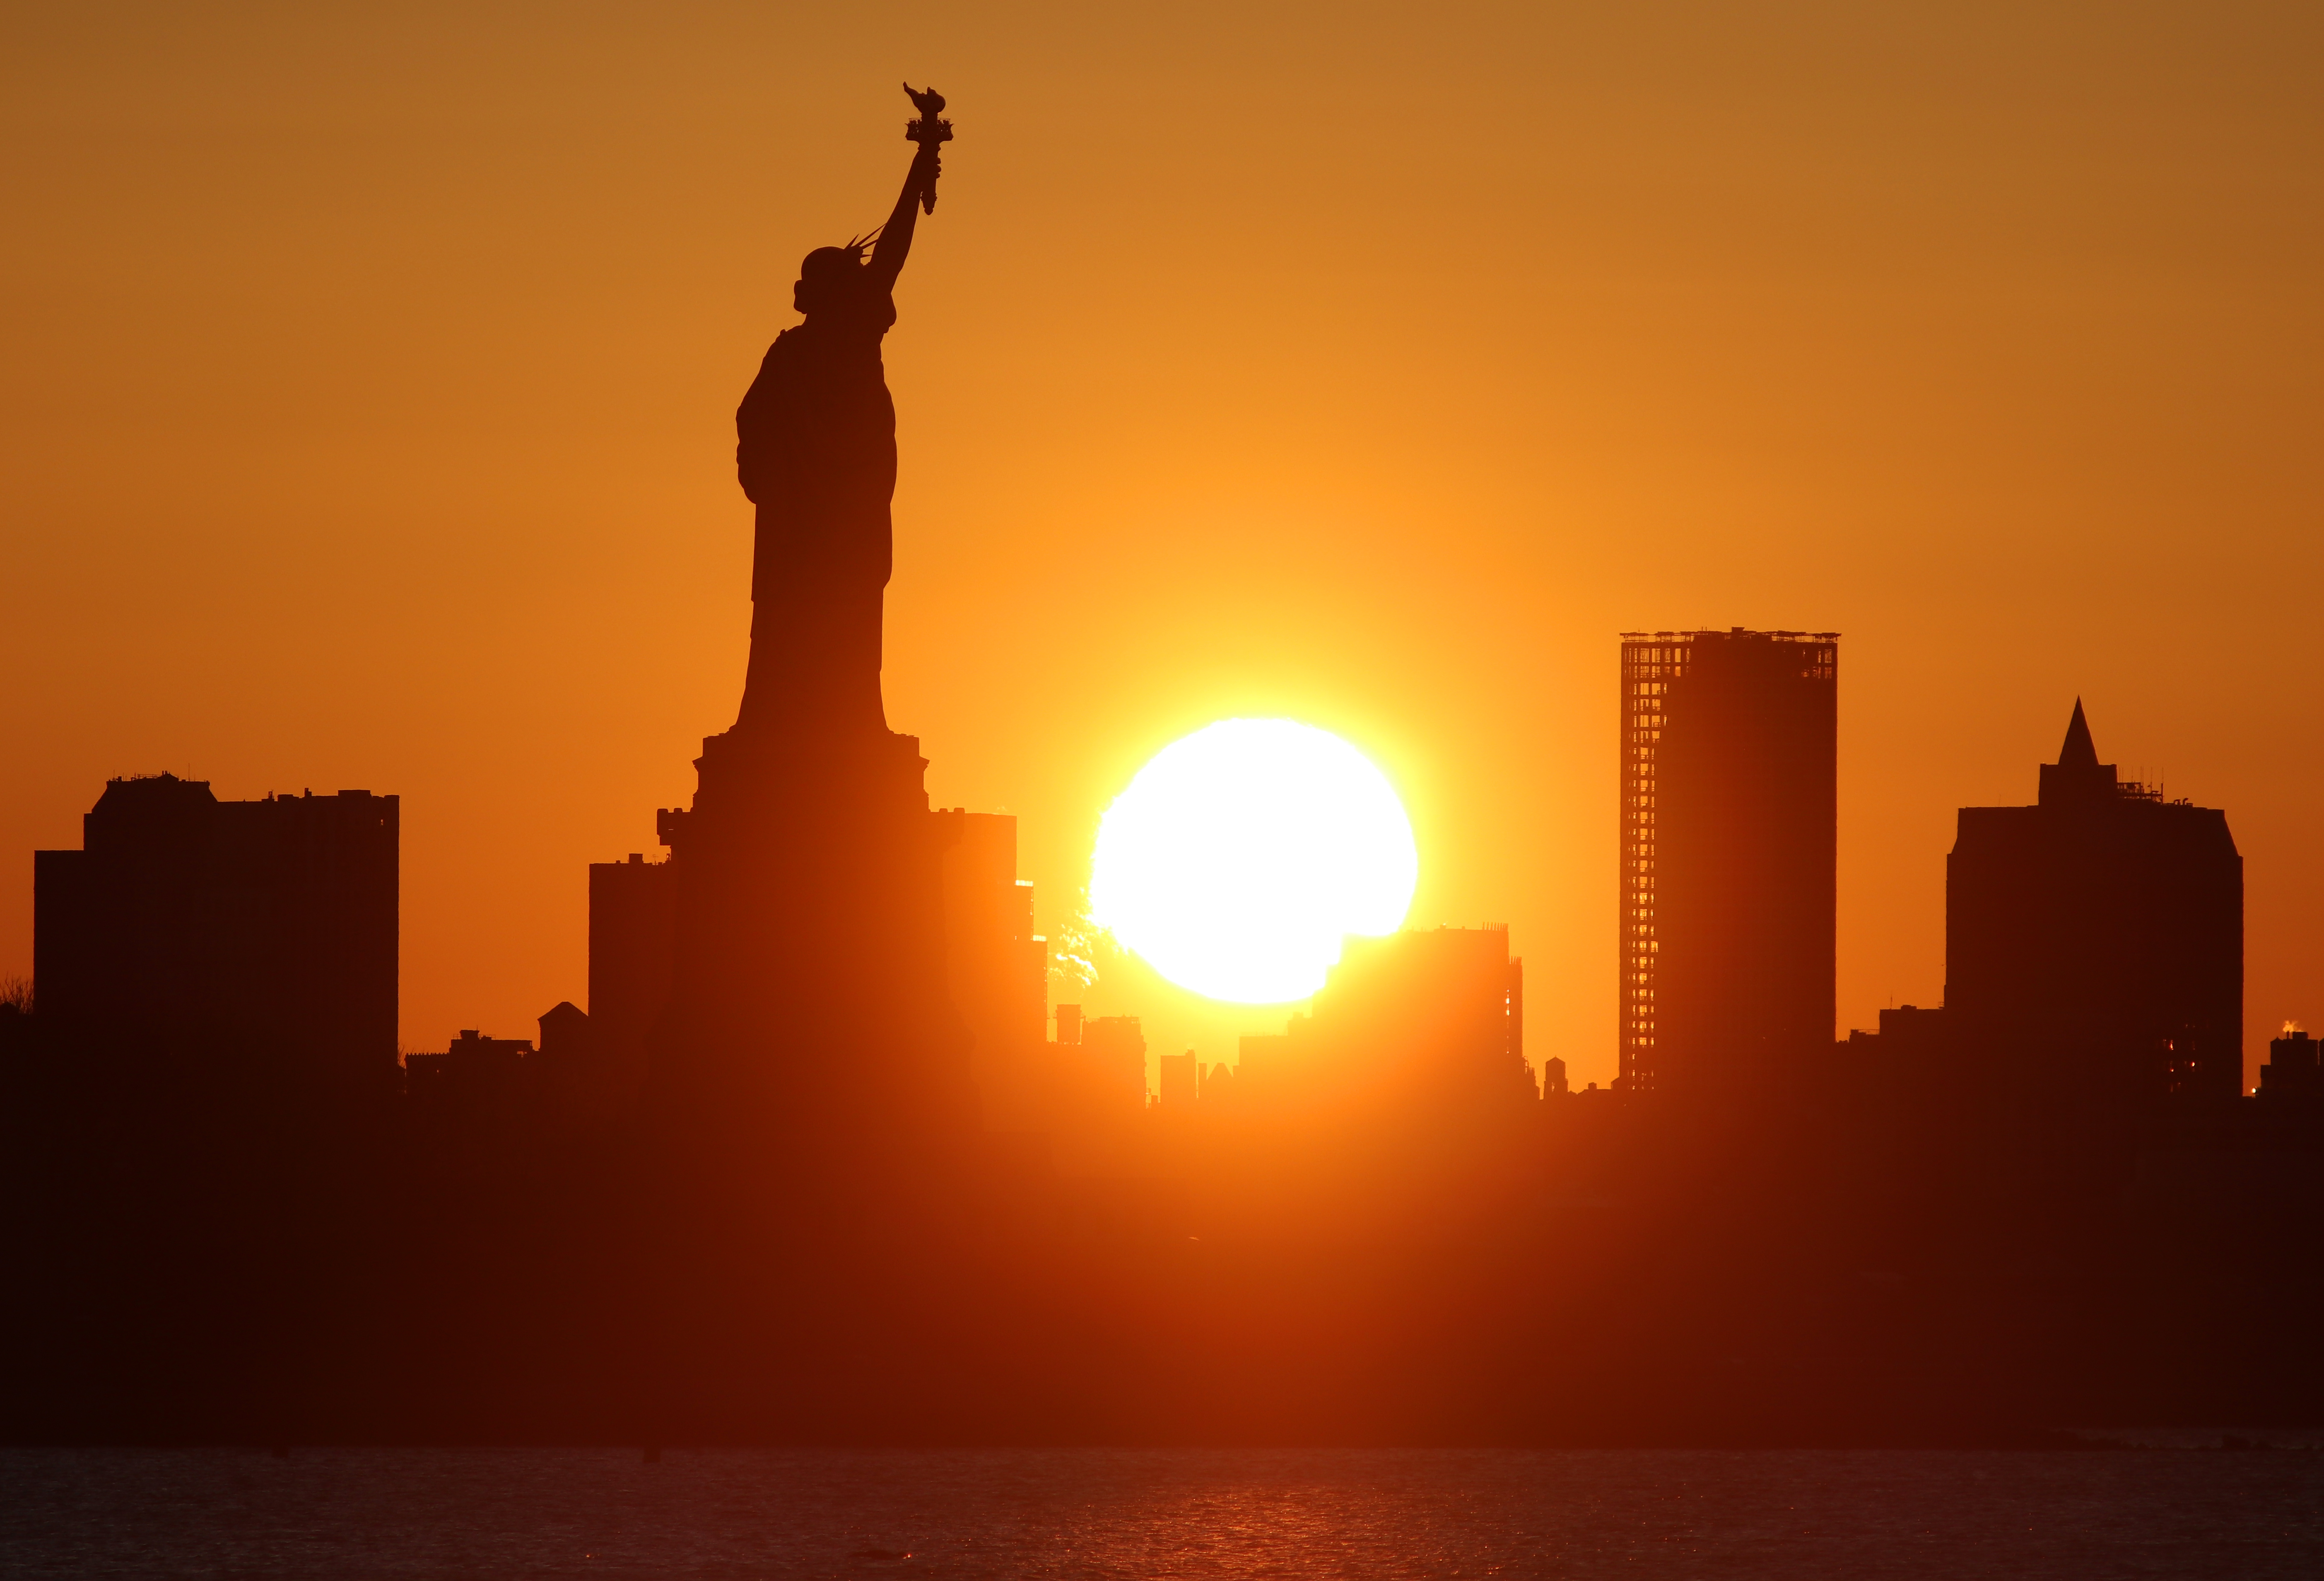 Sunrise Behind the Statue of Liberty in New York City